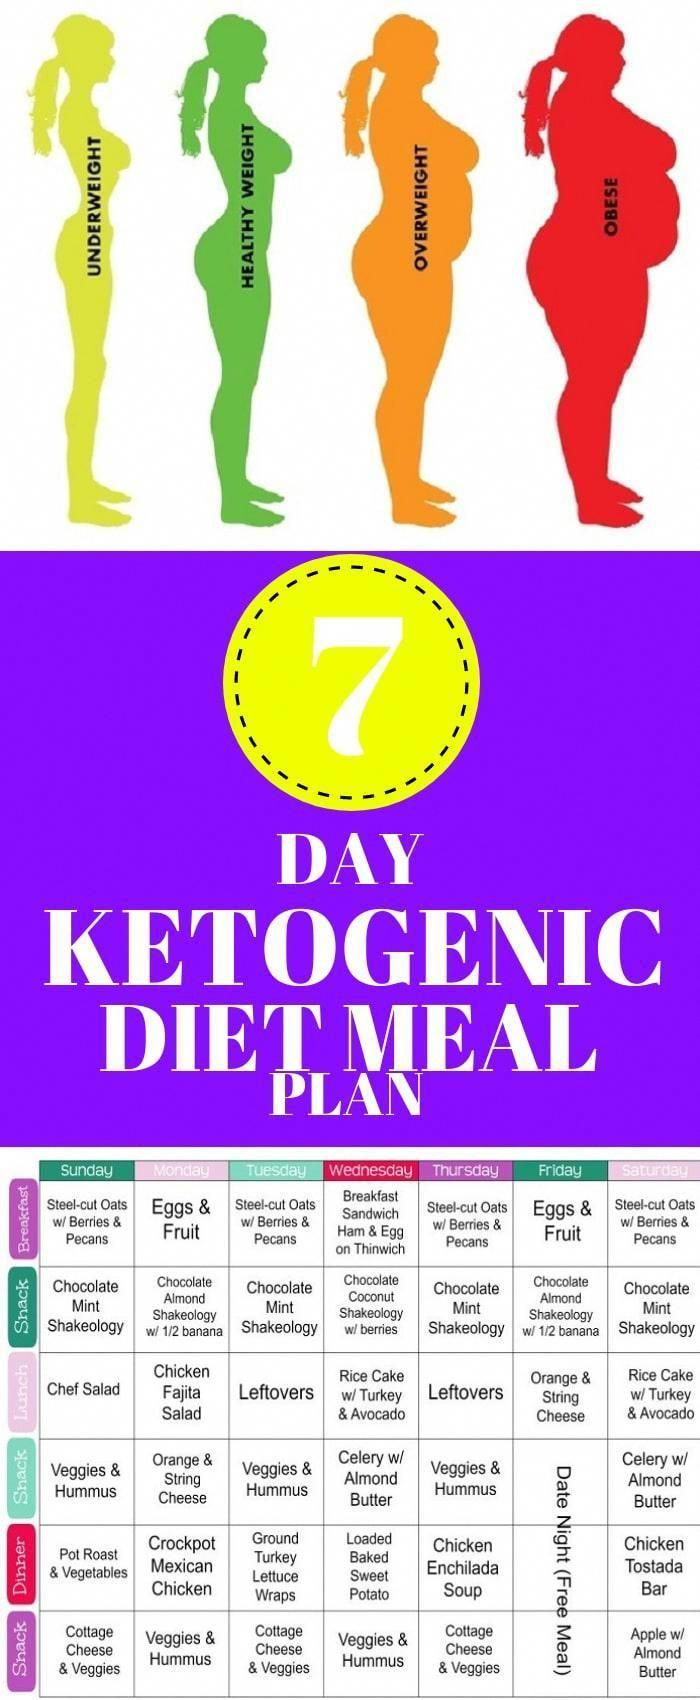 90 Day Keto Diet Meal Plan Ketodietdailymealplan Diet Meal Plans Ketogenic Diet Meal Plan Ketogenic Diet For Beginners